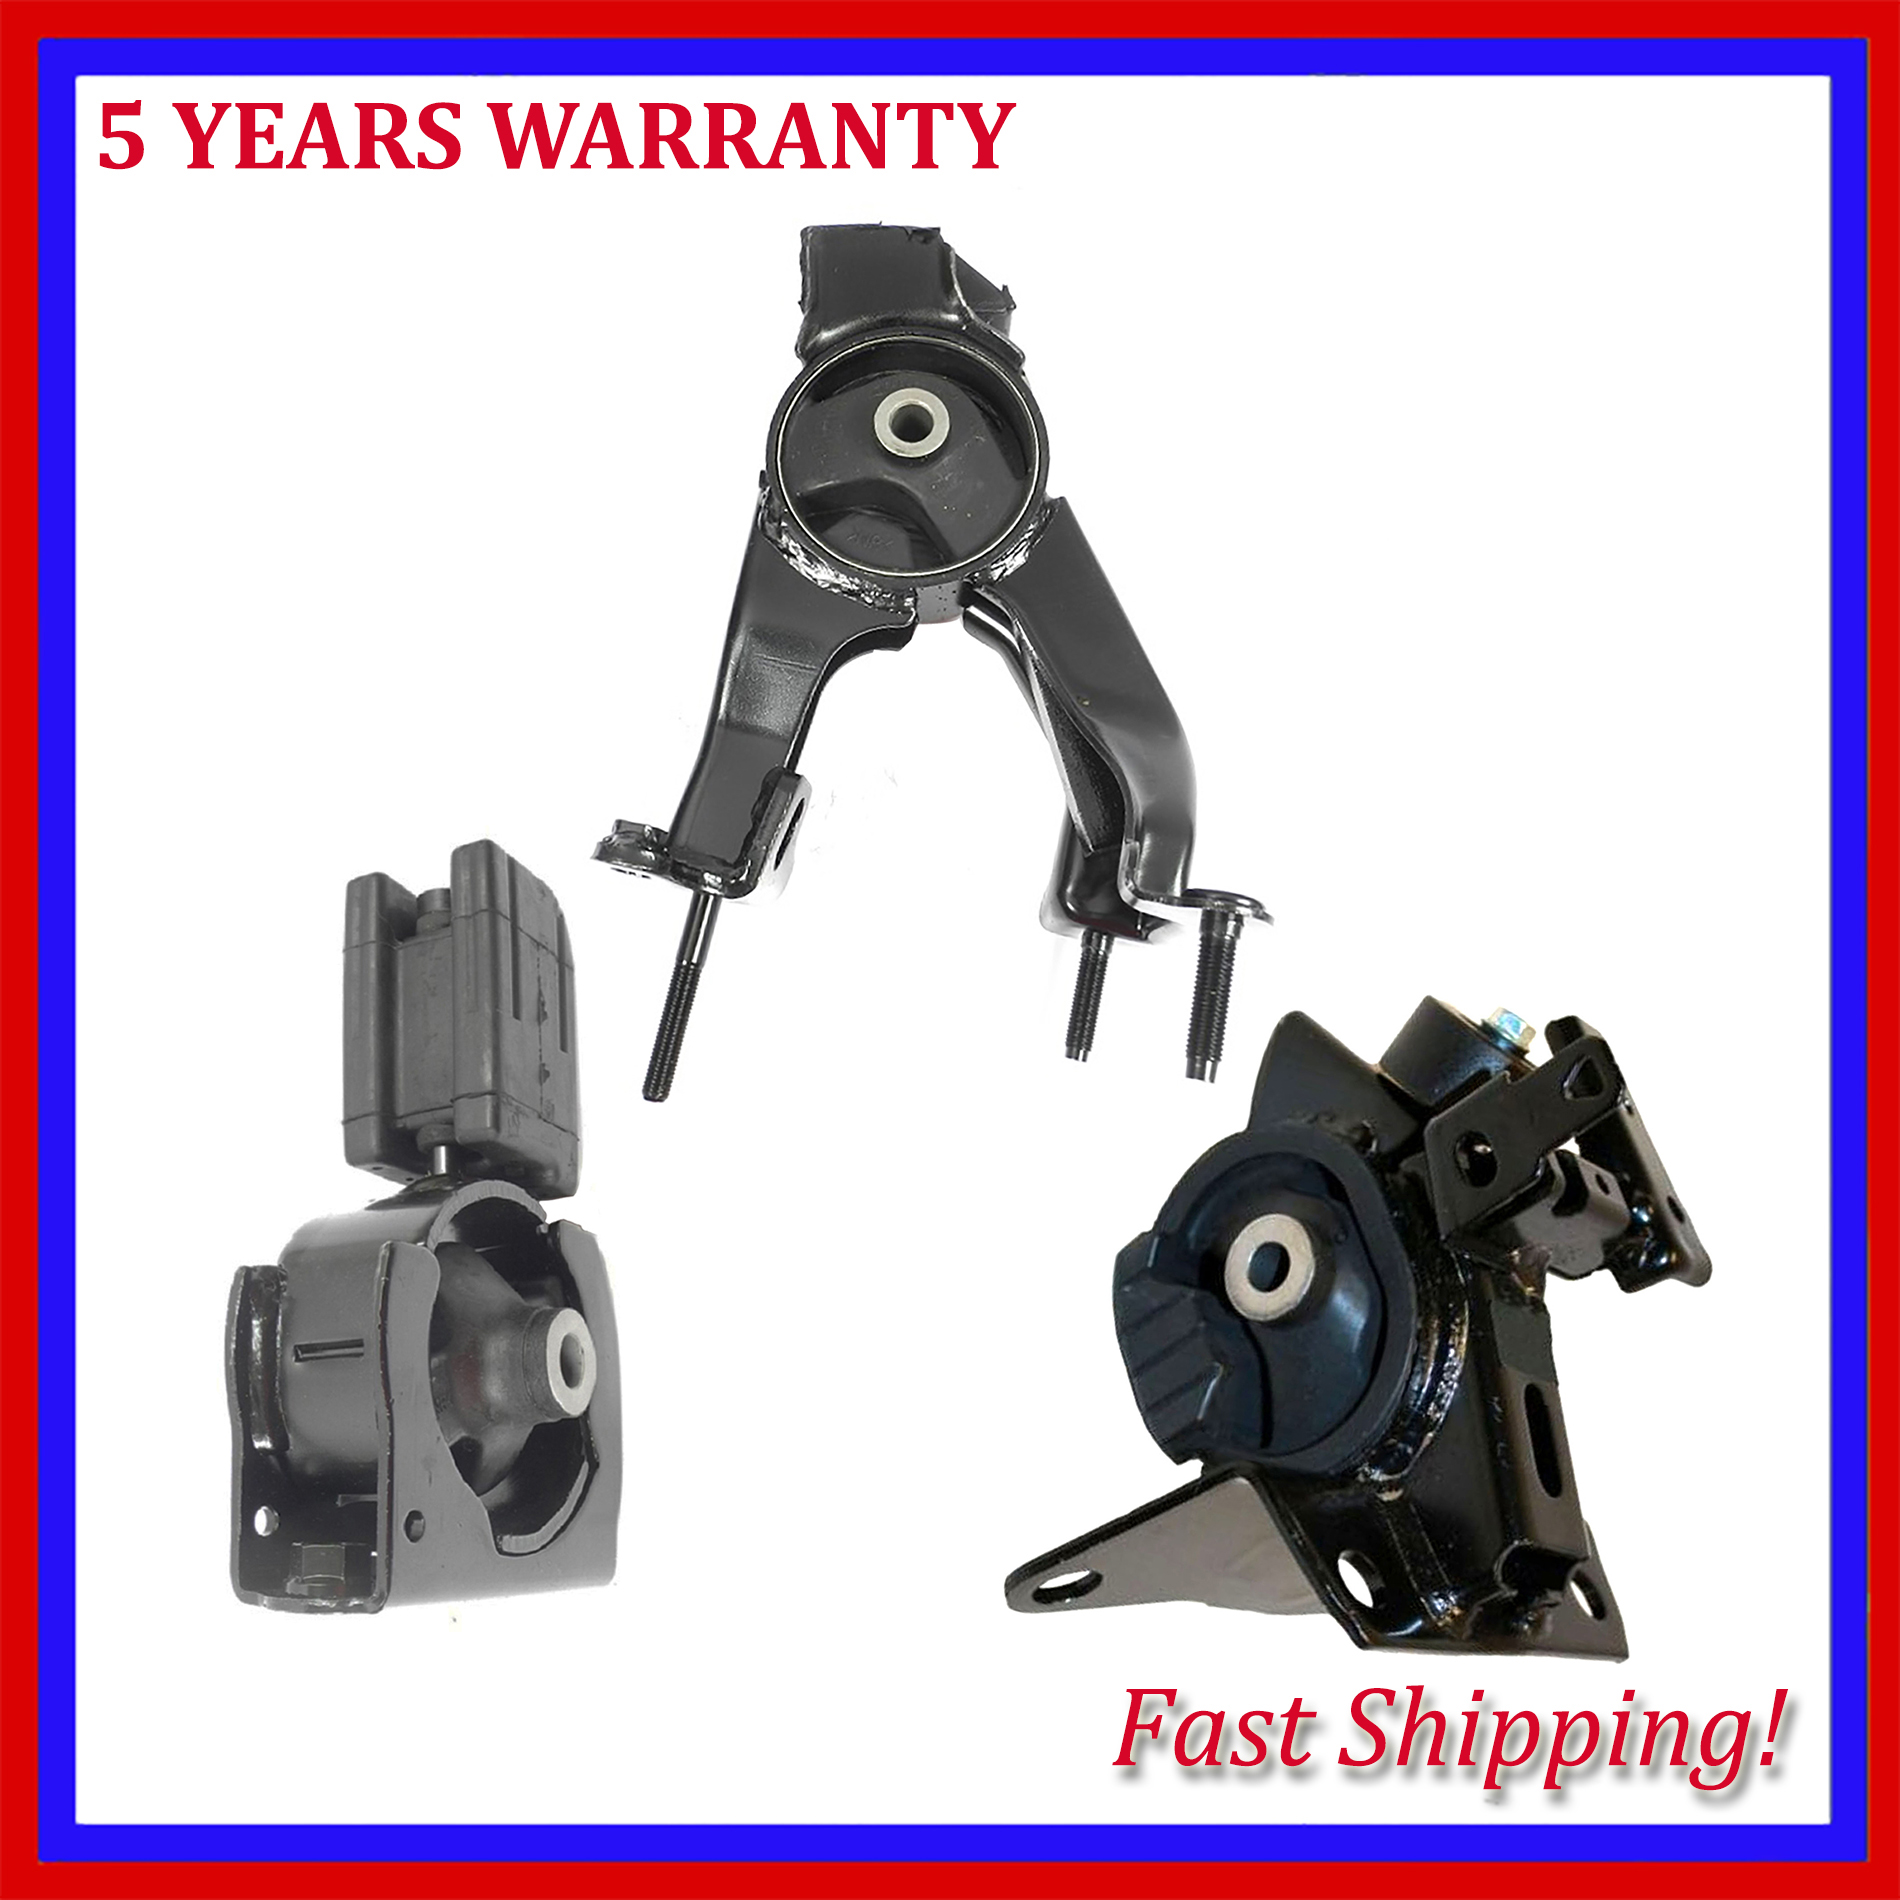 Transmission Mount for Scion tC 2.4L Brand New